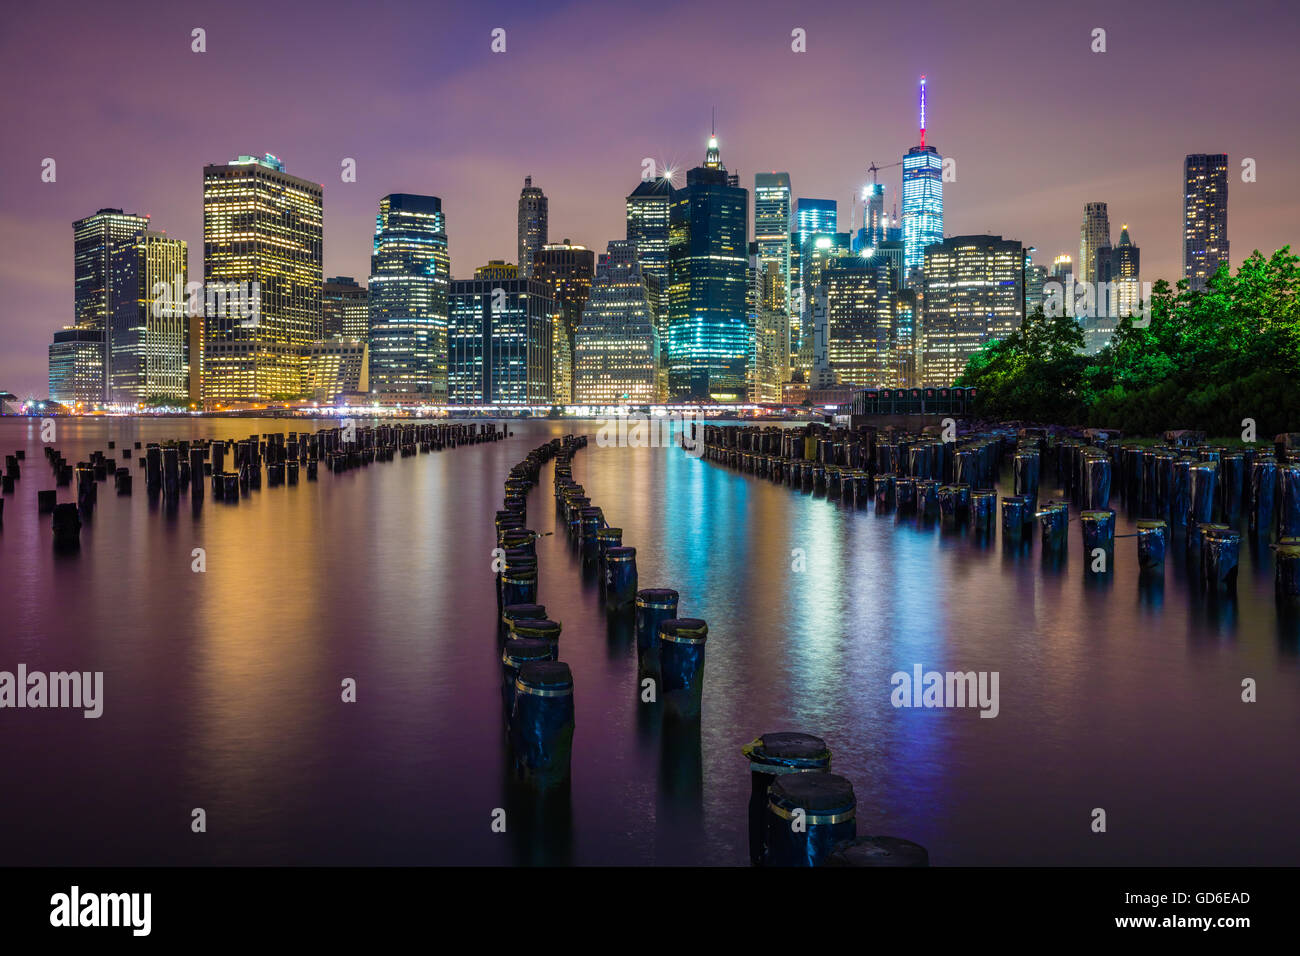 Brooklyn Bridge Park is an 85-acre park on the Brooklyn side of the East River in New York City. Stock Photo